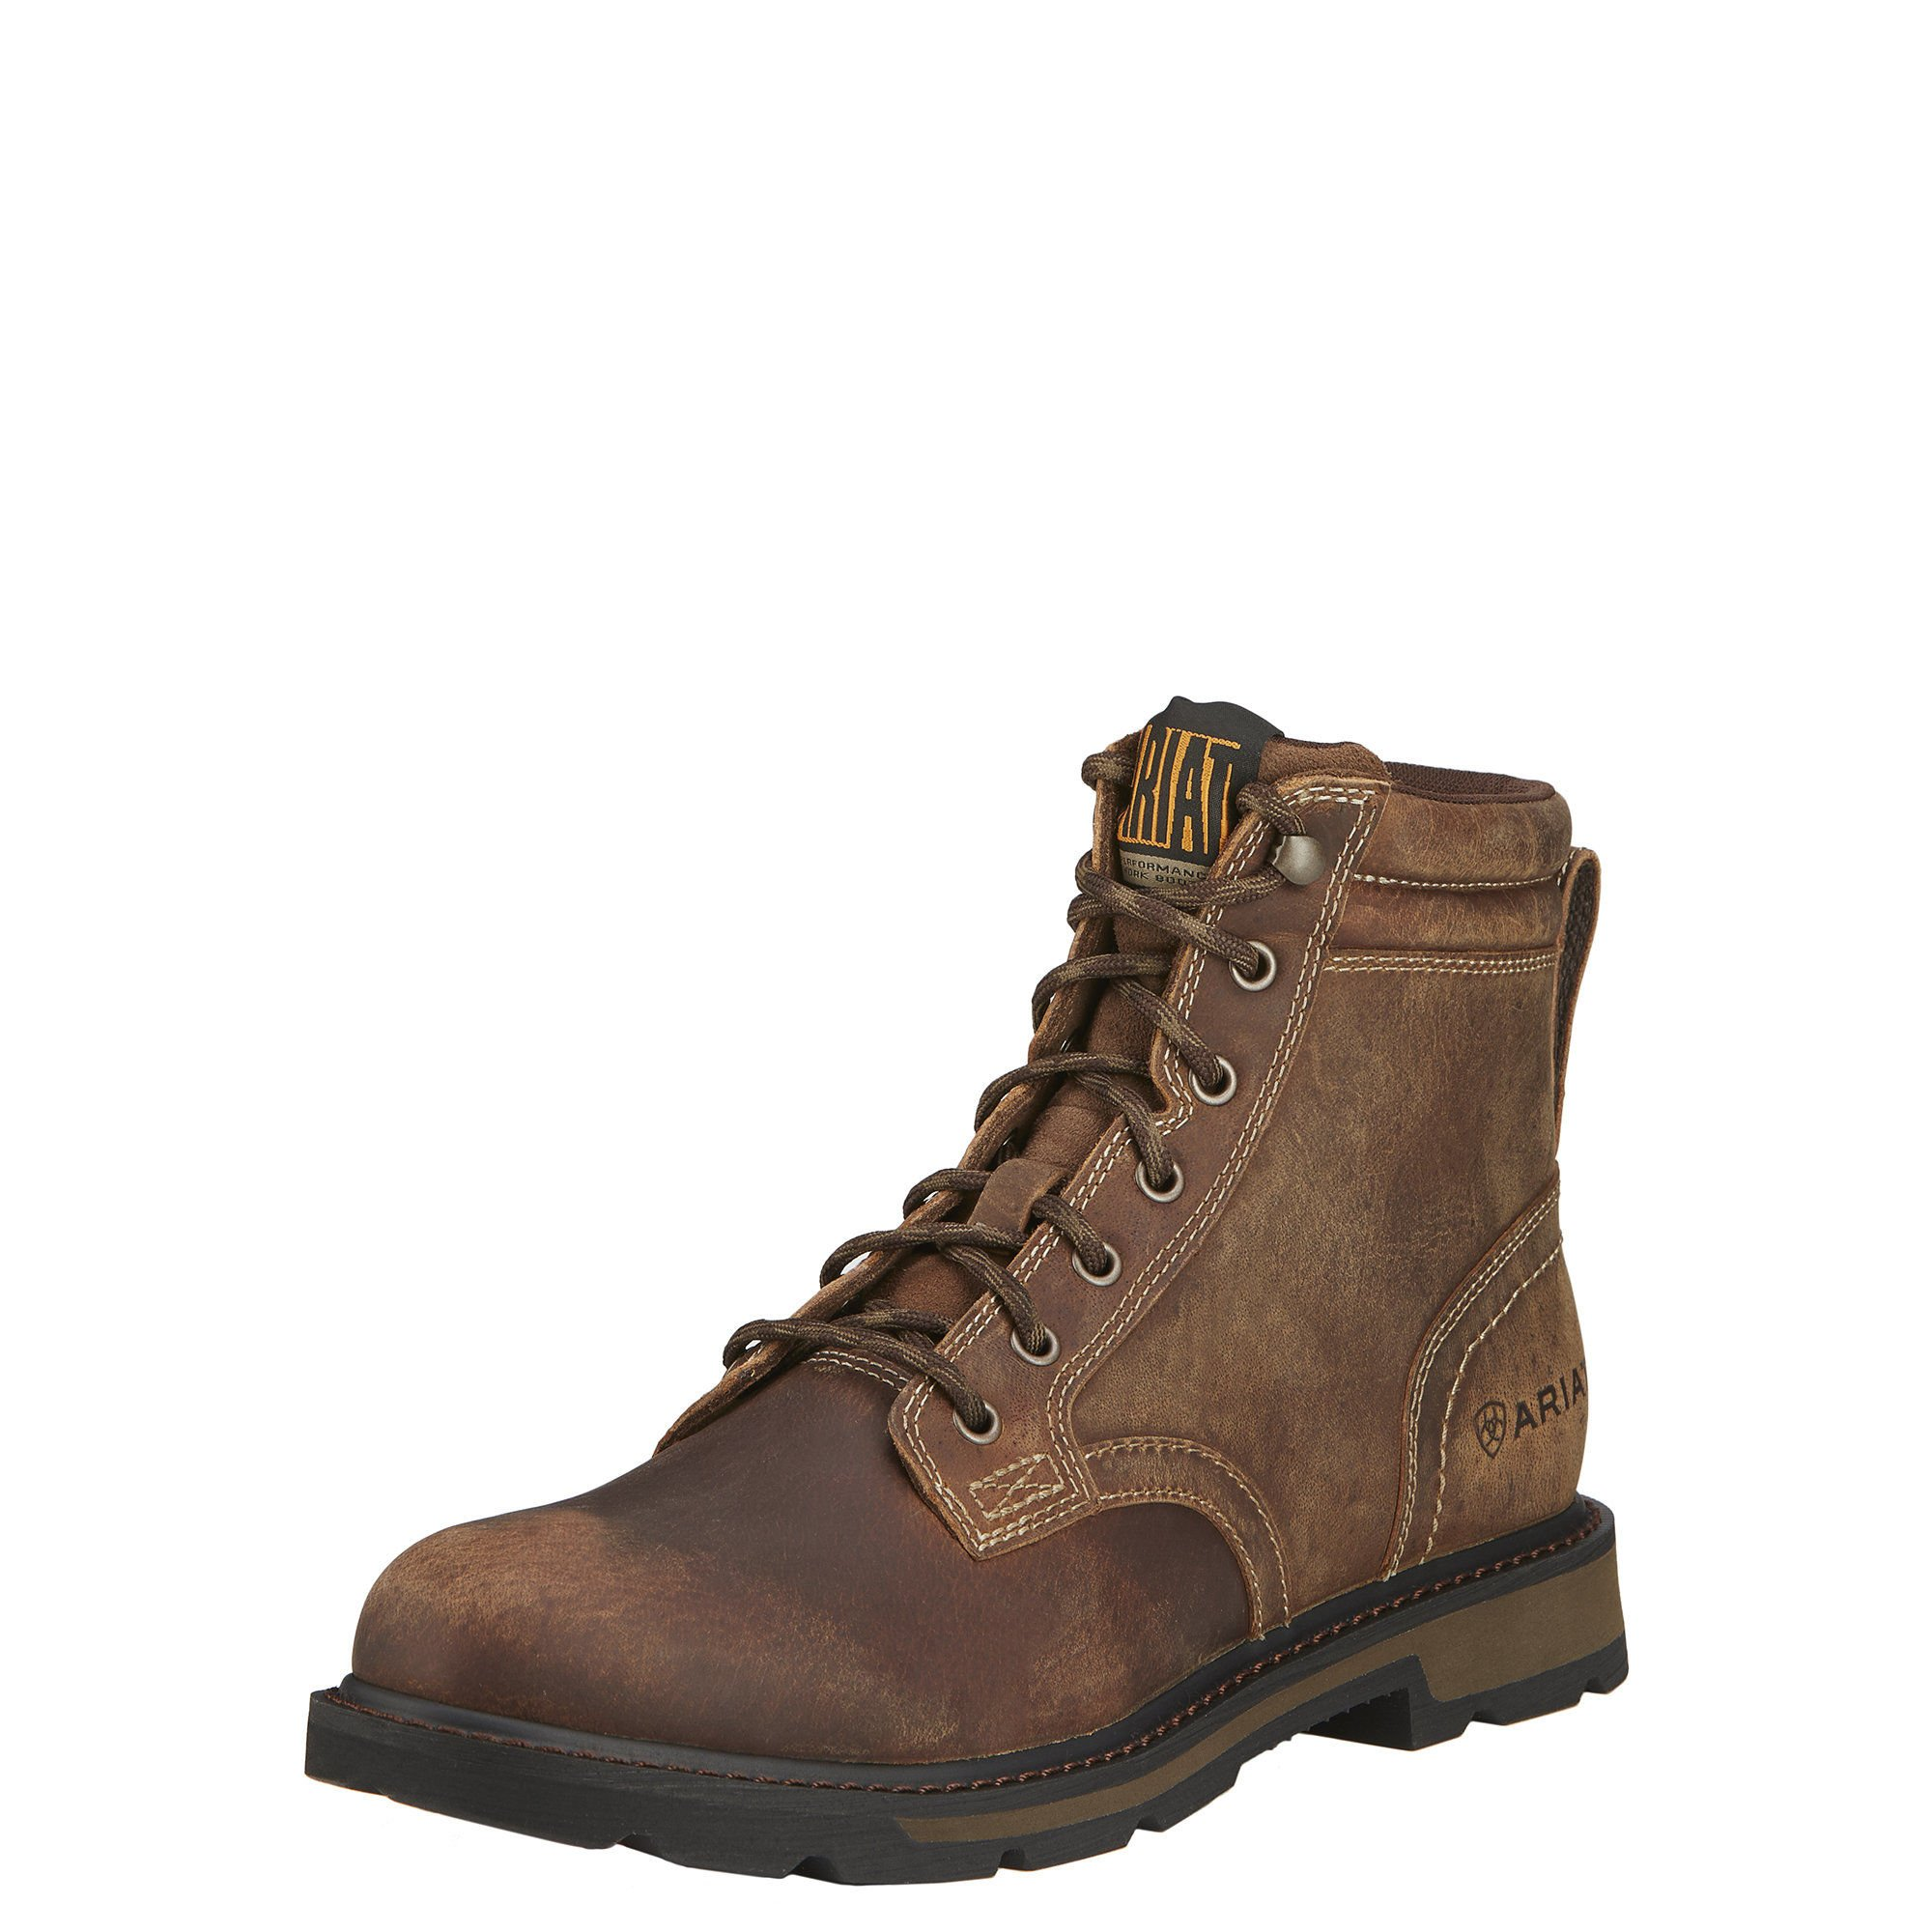 Ariat Men's Groundbreaker 6'' Work Boot, Brown, 12 EE US